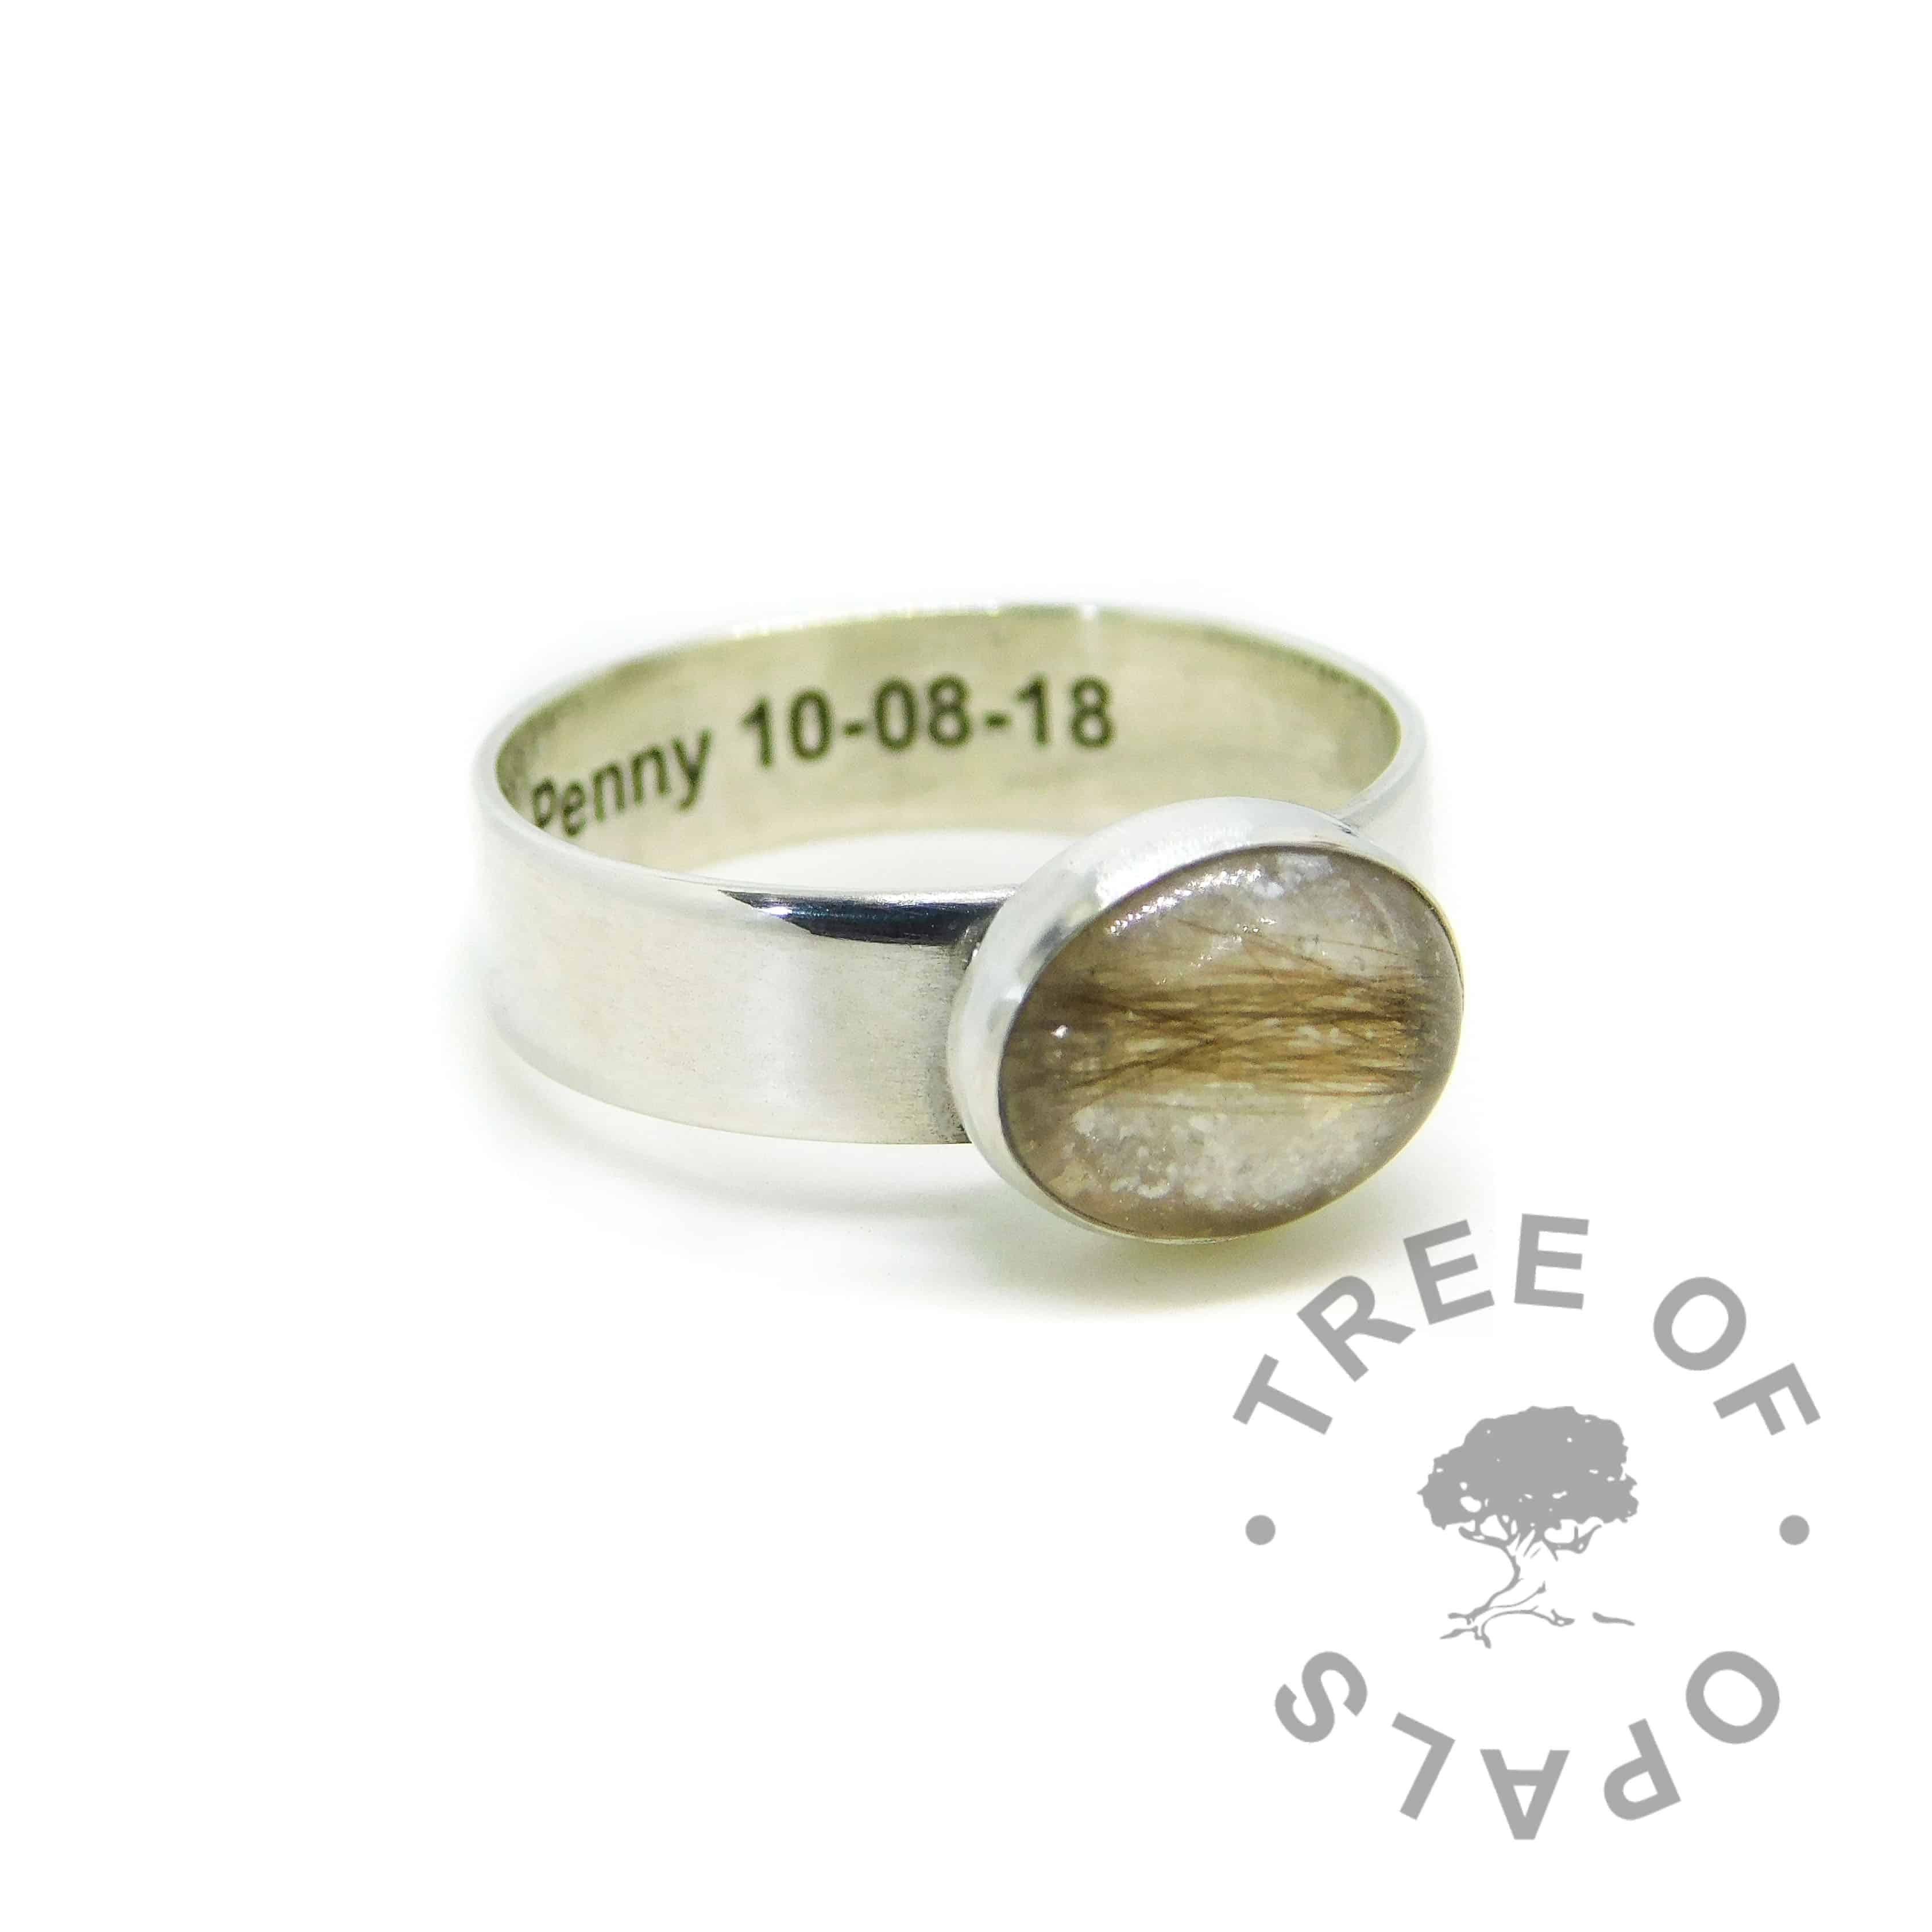 Engraved 6mm lock of hair ring with unicorn white sparkle mix and subtle August birthstone peridot. Engraved inside in Arial font. Handmade solid sterling silver memorial ring